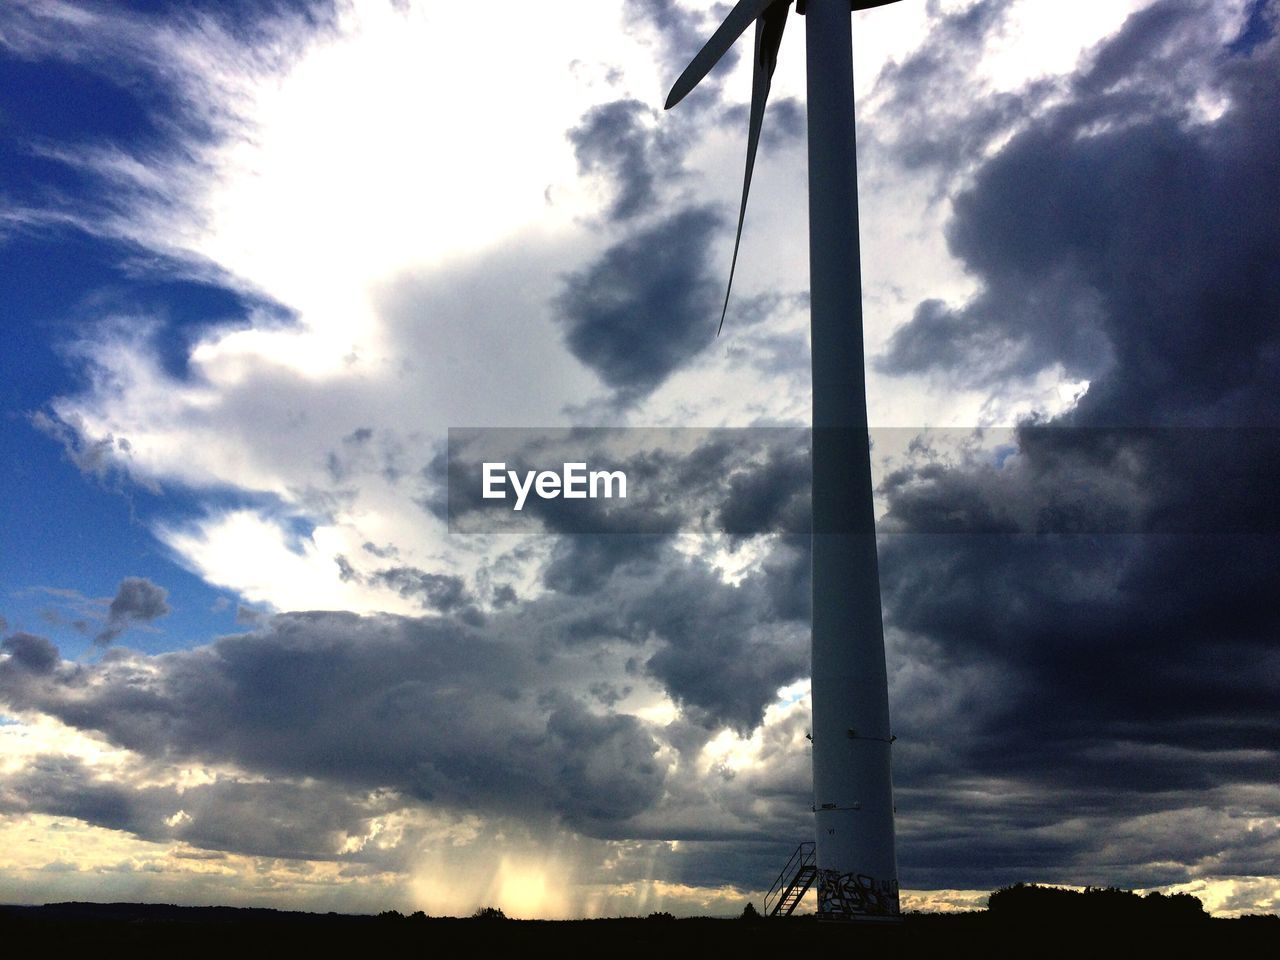 sky, cloud - sky, low angle view, no people, outdoors, day, silhouette, nature, sunlight, beauty in nature, industrial windmill